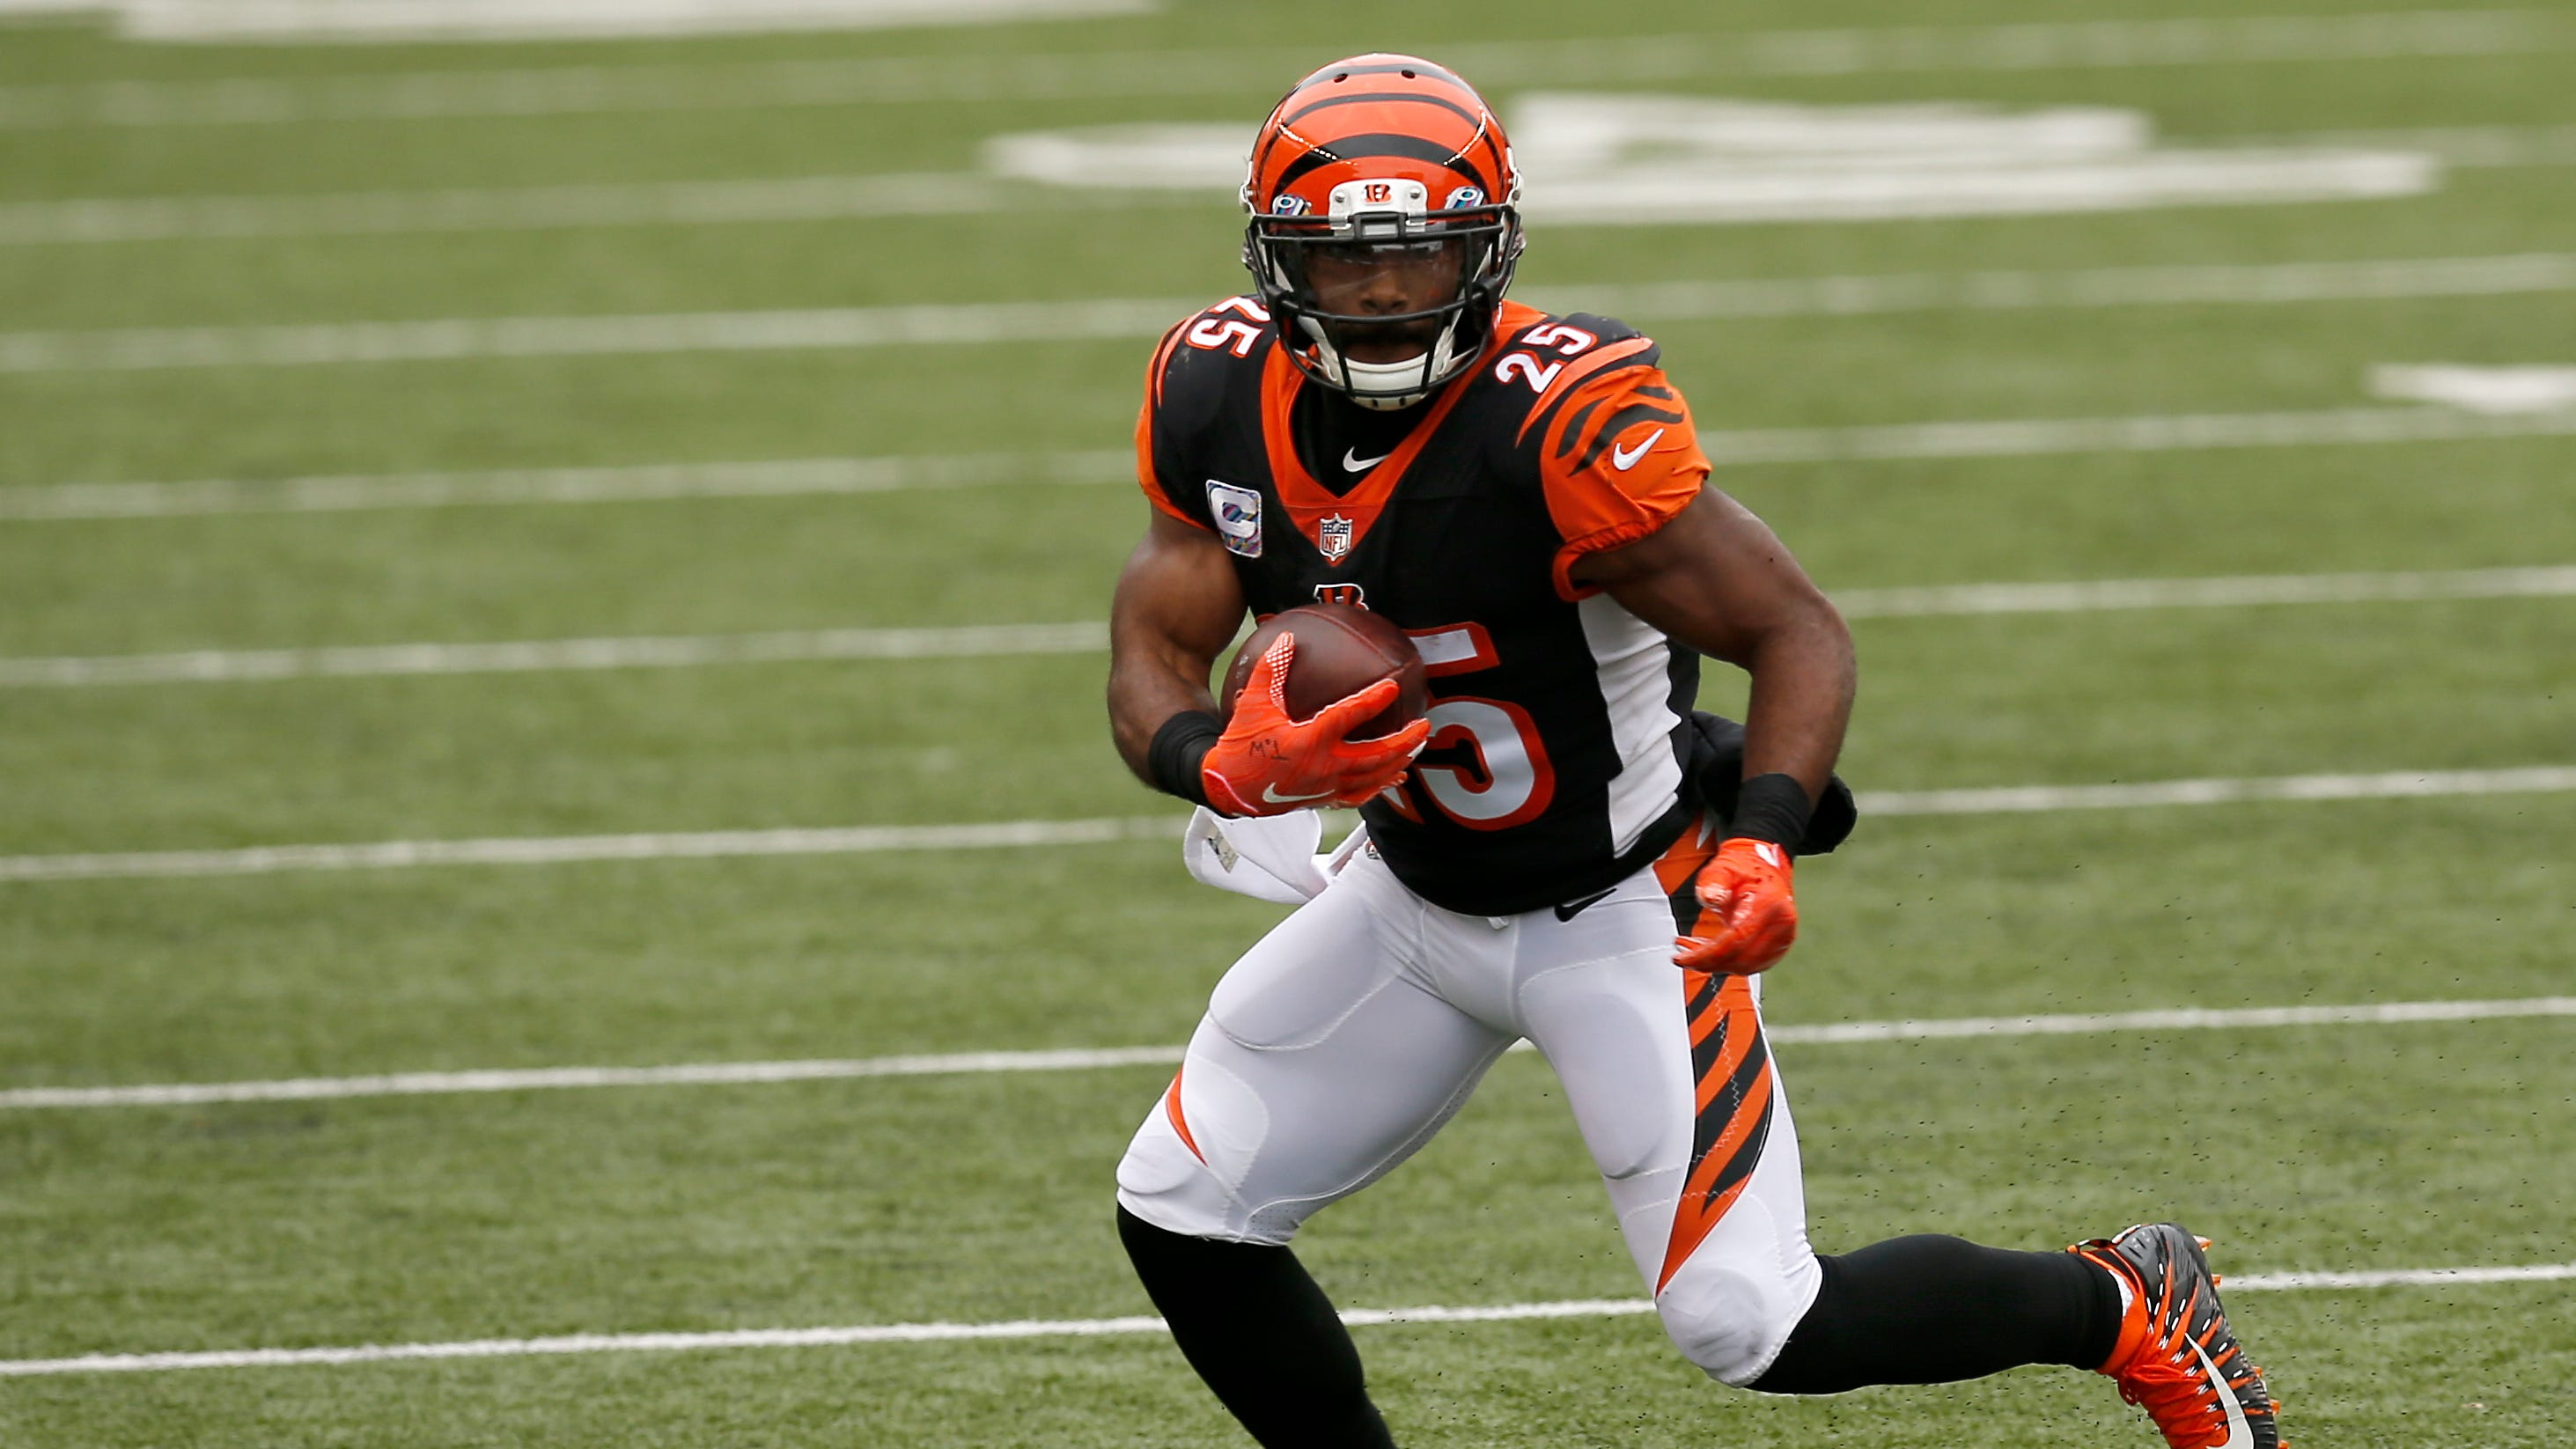 Watch: Giovani Bernard press conference after loss to Cleveland Browns